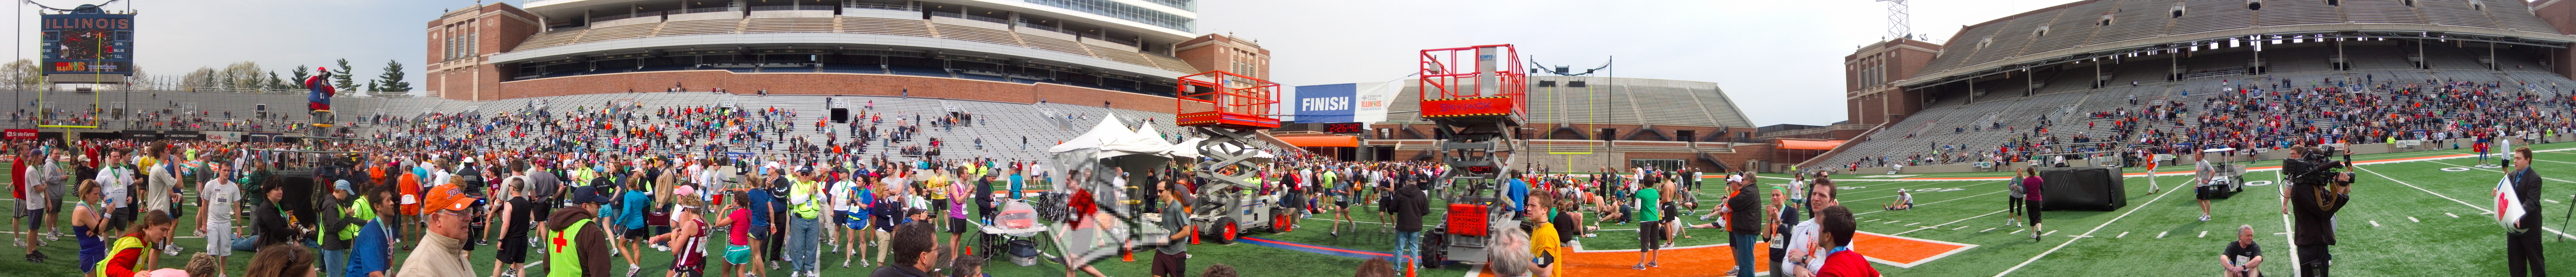 p145-1-p145-8half  Finish Time 2:26:40 Illinois Marathon 2011 Memorial Stadium Finish Line